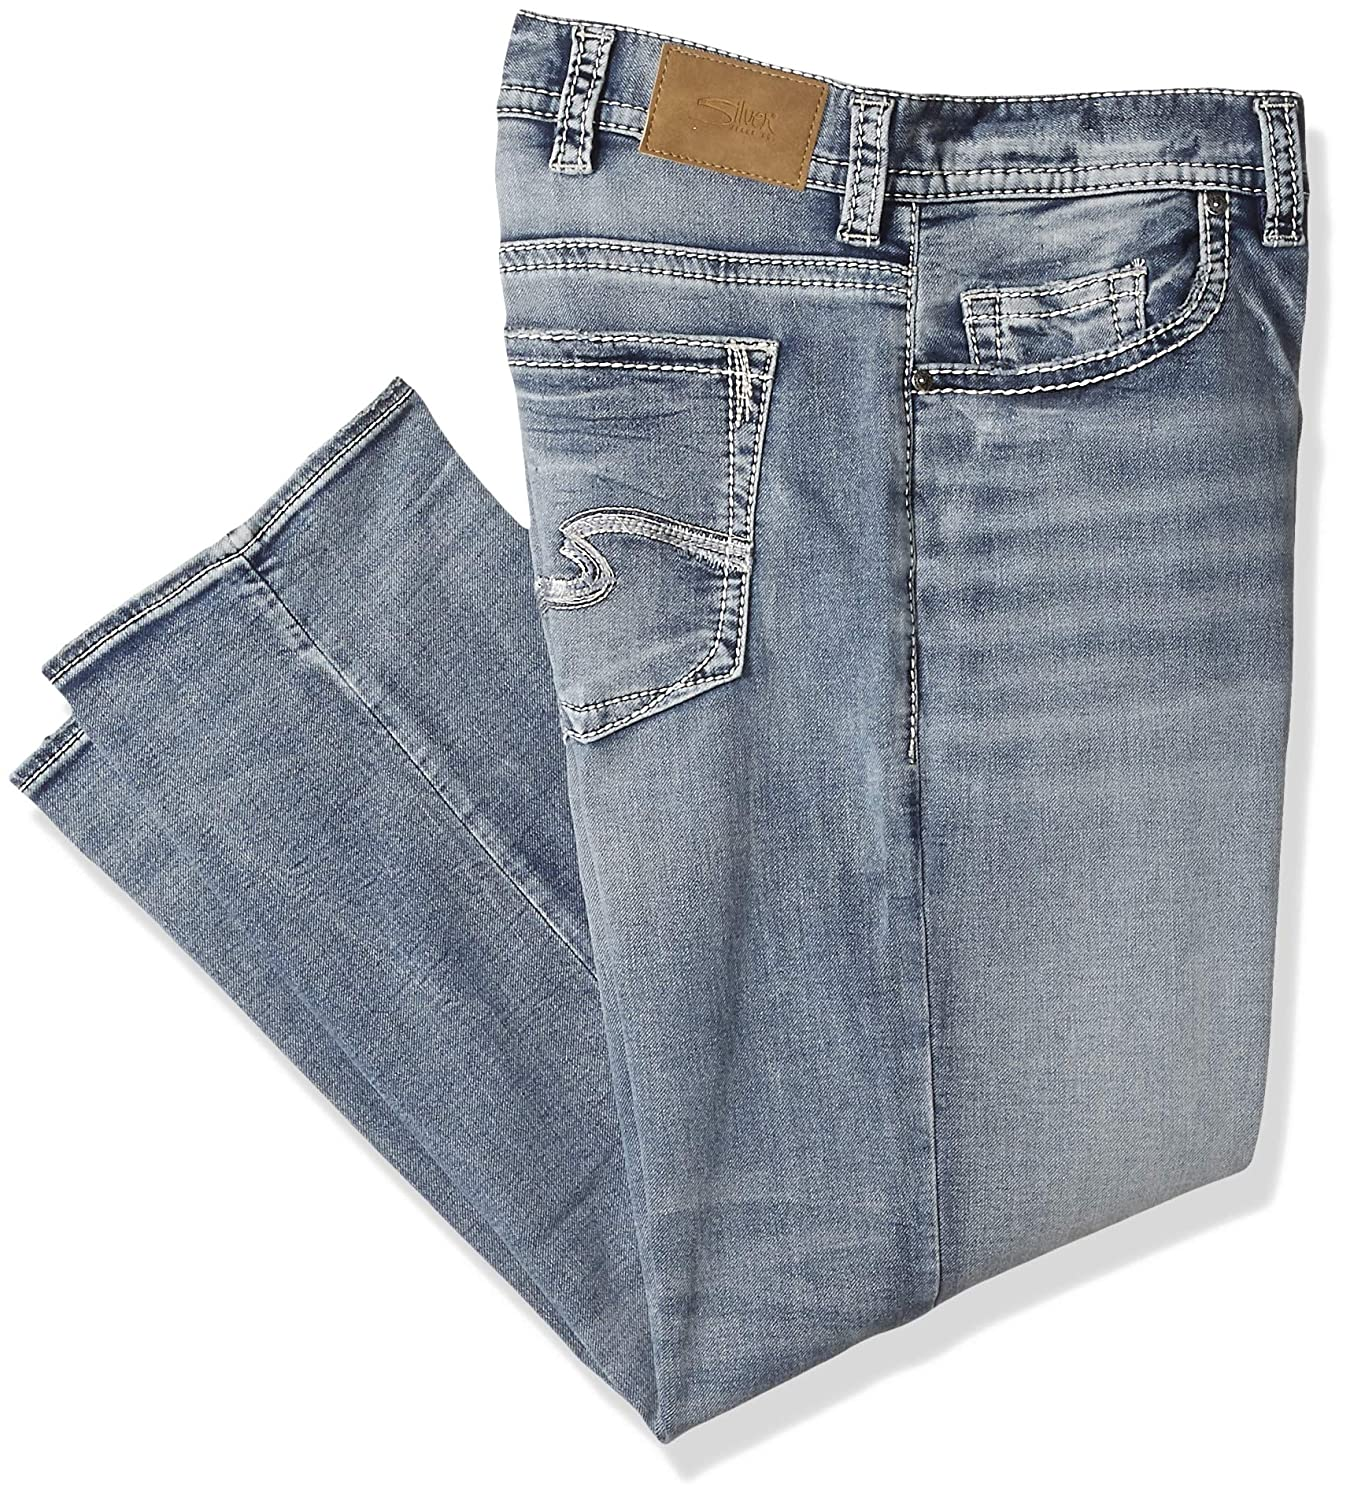 2bda0c92556 Amazon.com  Silver Jeans Co. Men s Big and Tall Grayson Easy Fit Straight  Leg  Clothing